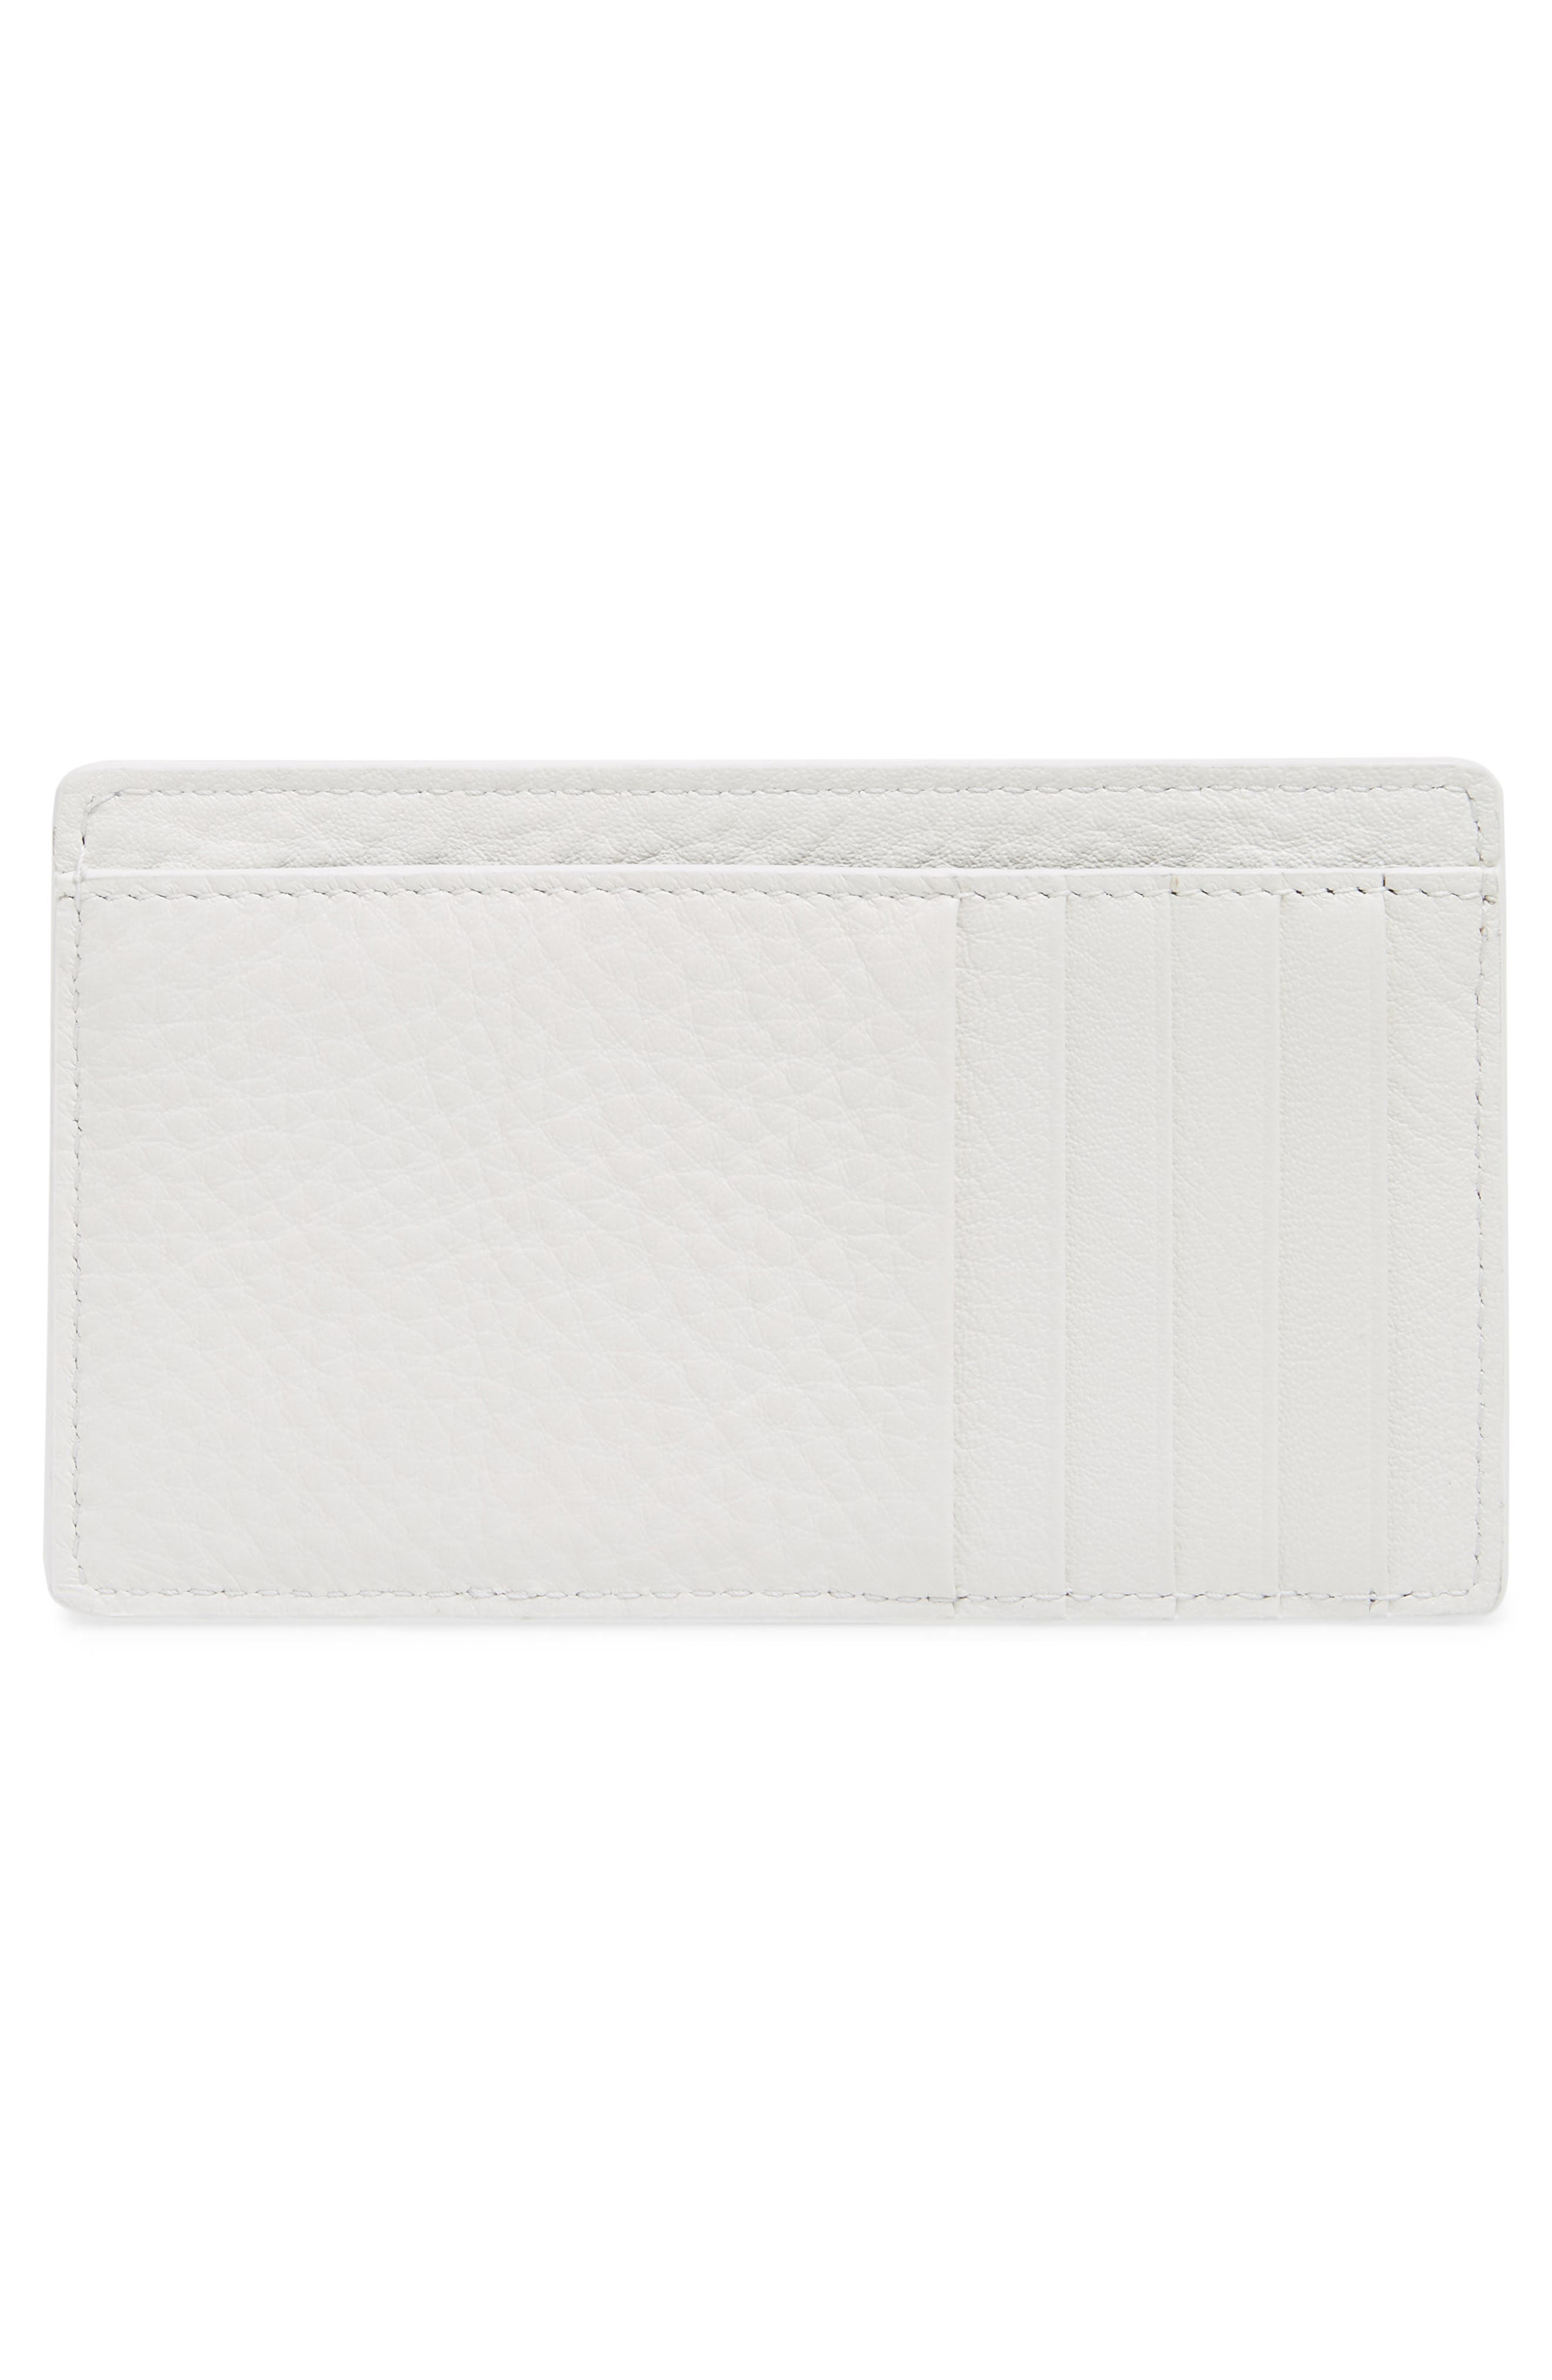 Everyday Leather Card Case,                             Alternate thumbnail 2, color,                             125